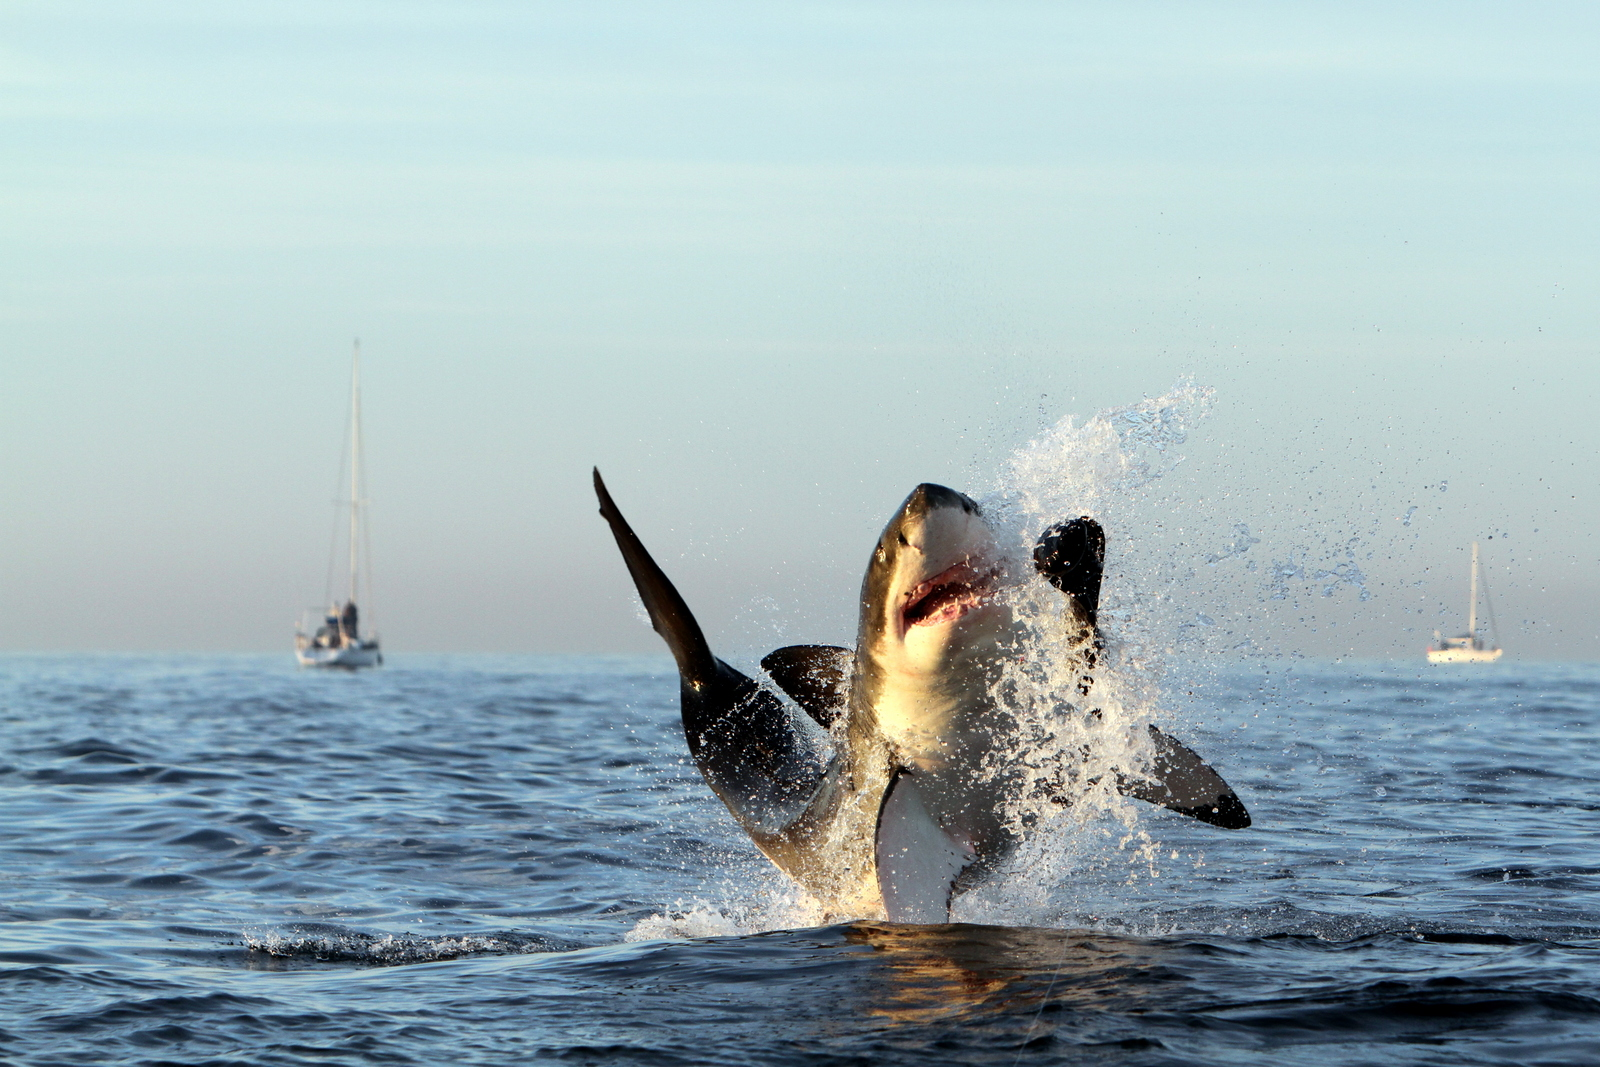 Breaching Great White Shark at Seal Island, False Bay